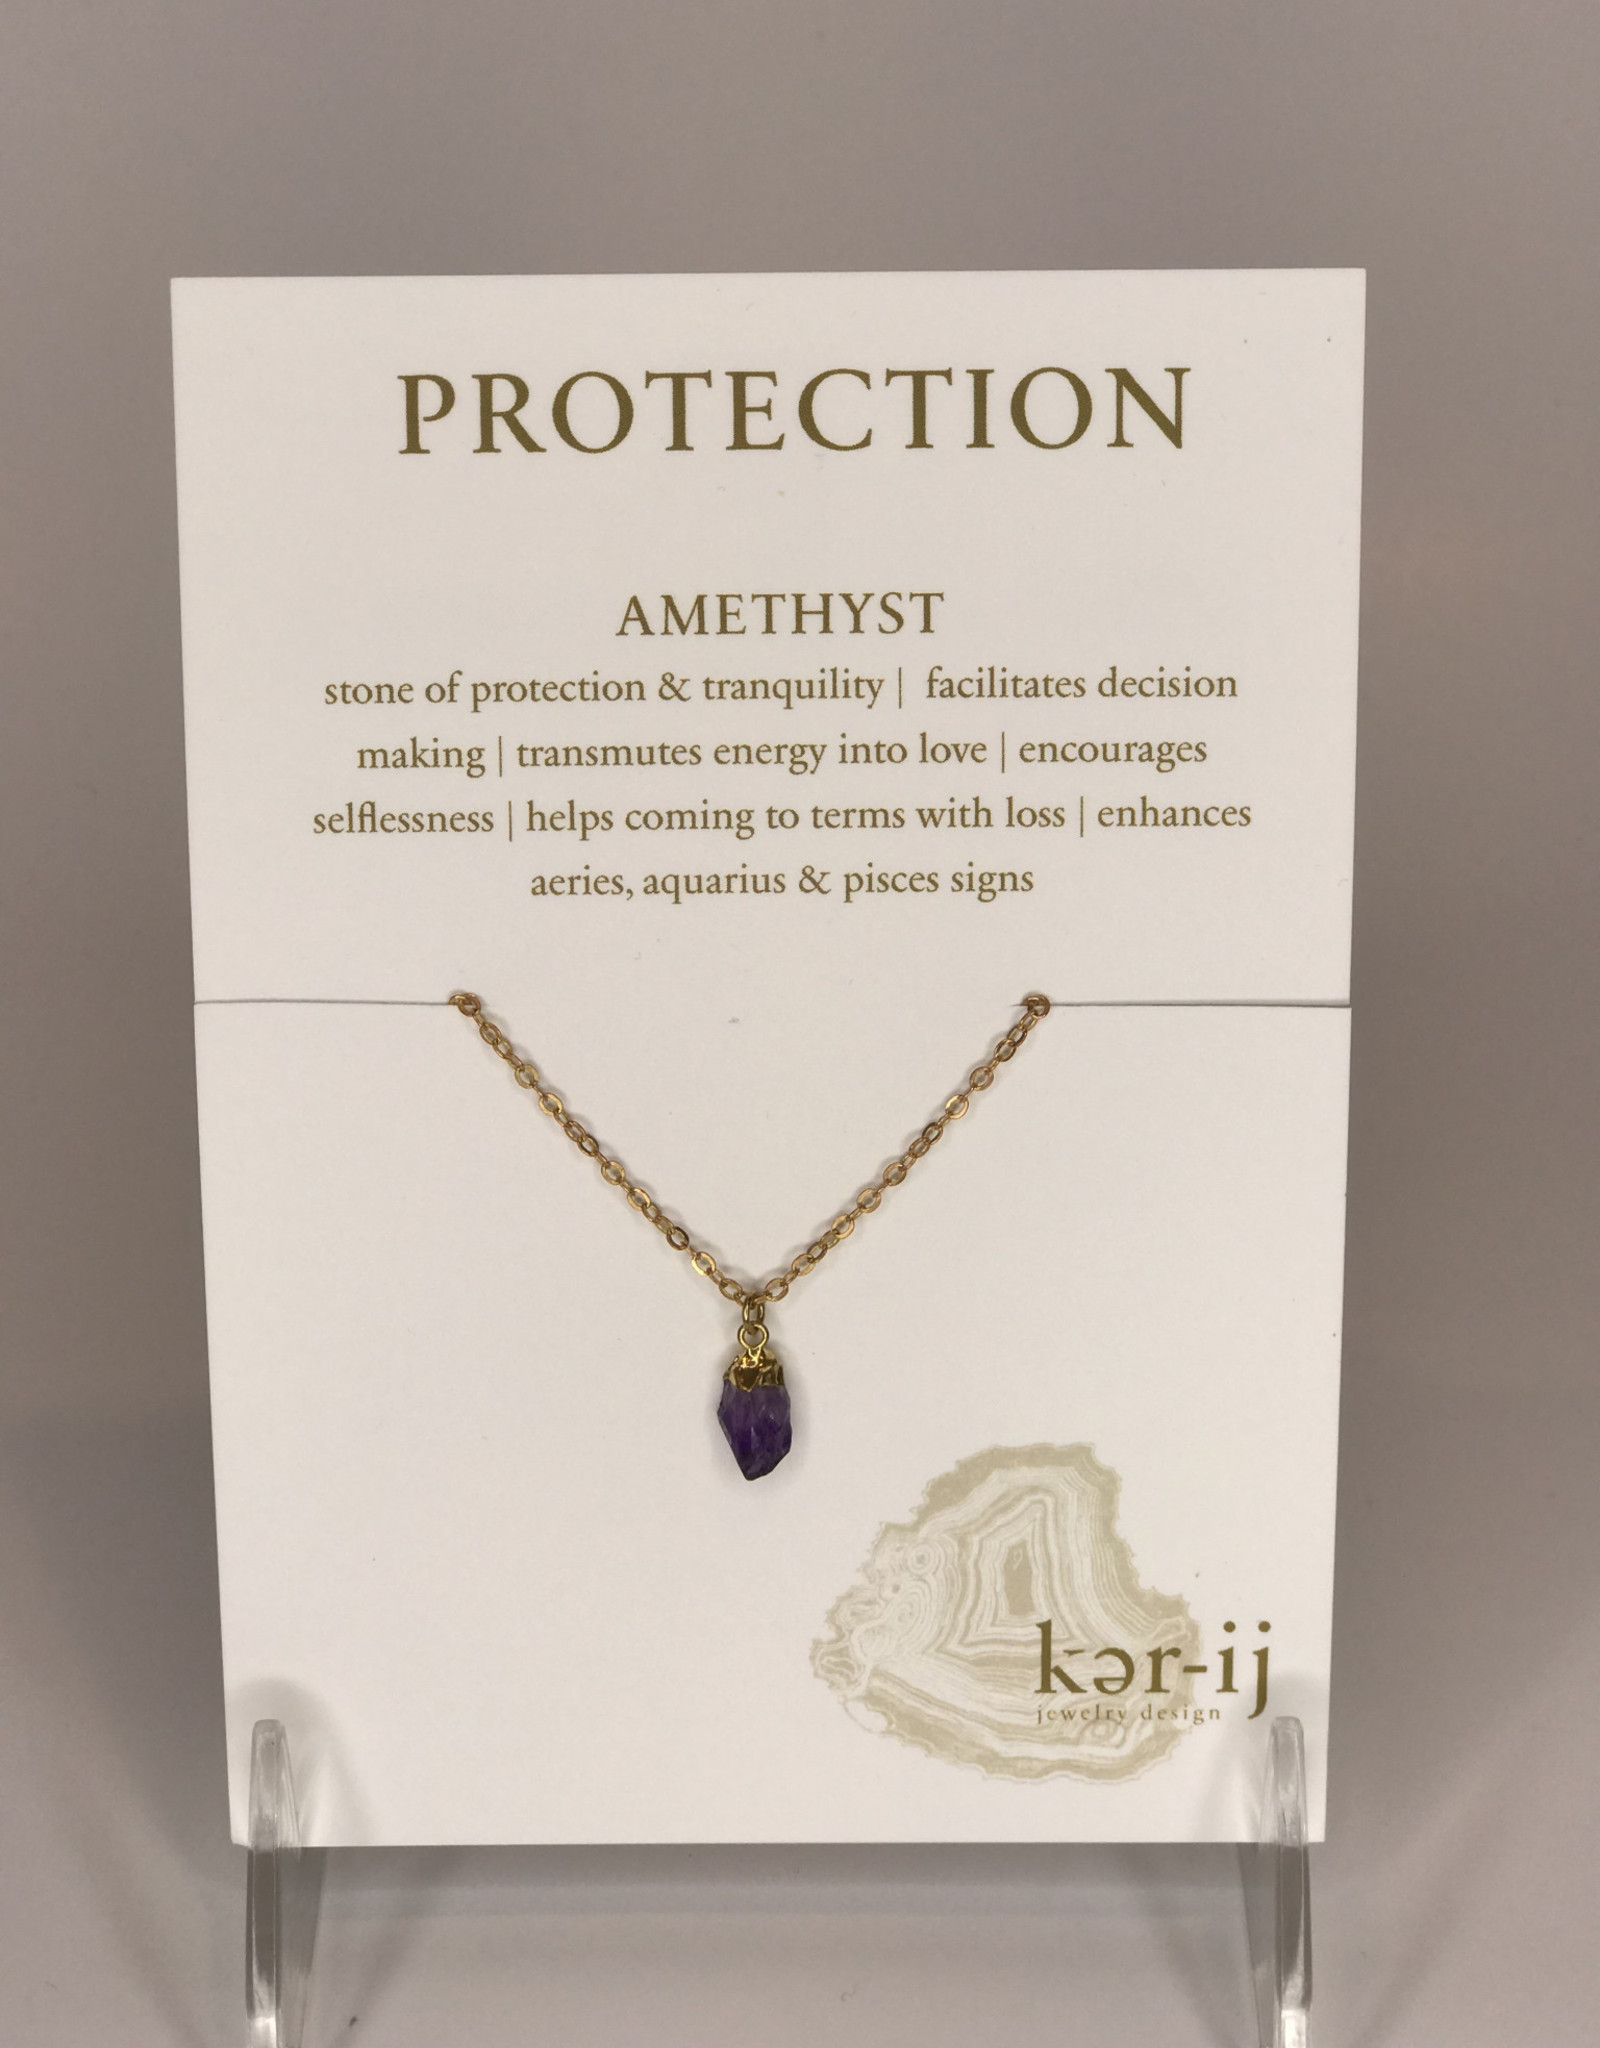 Ker-ij Jewelry Necklace- Protection Stone Amethyst